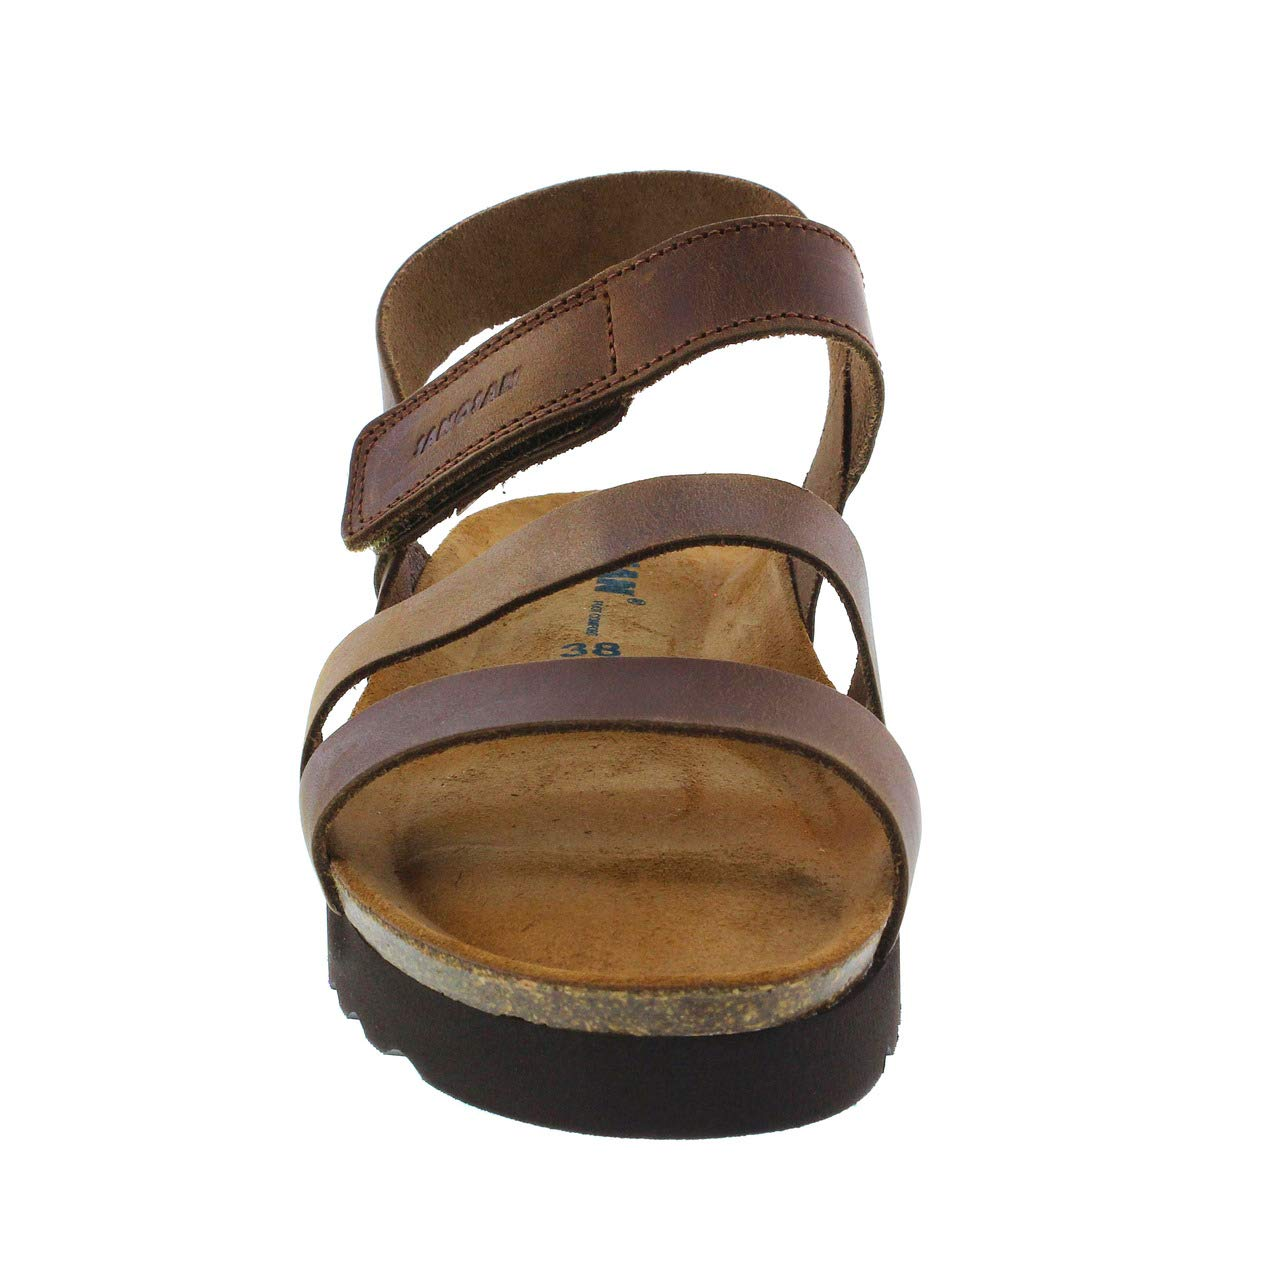 05e70c09f5 Amazon.com | Sanosan Women's Karma Oiled Leather Sandals | Sandals